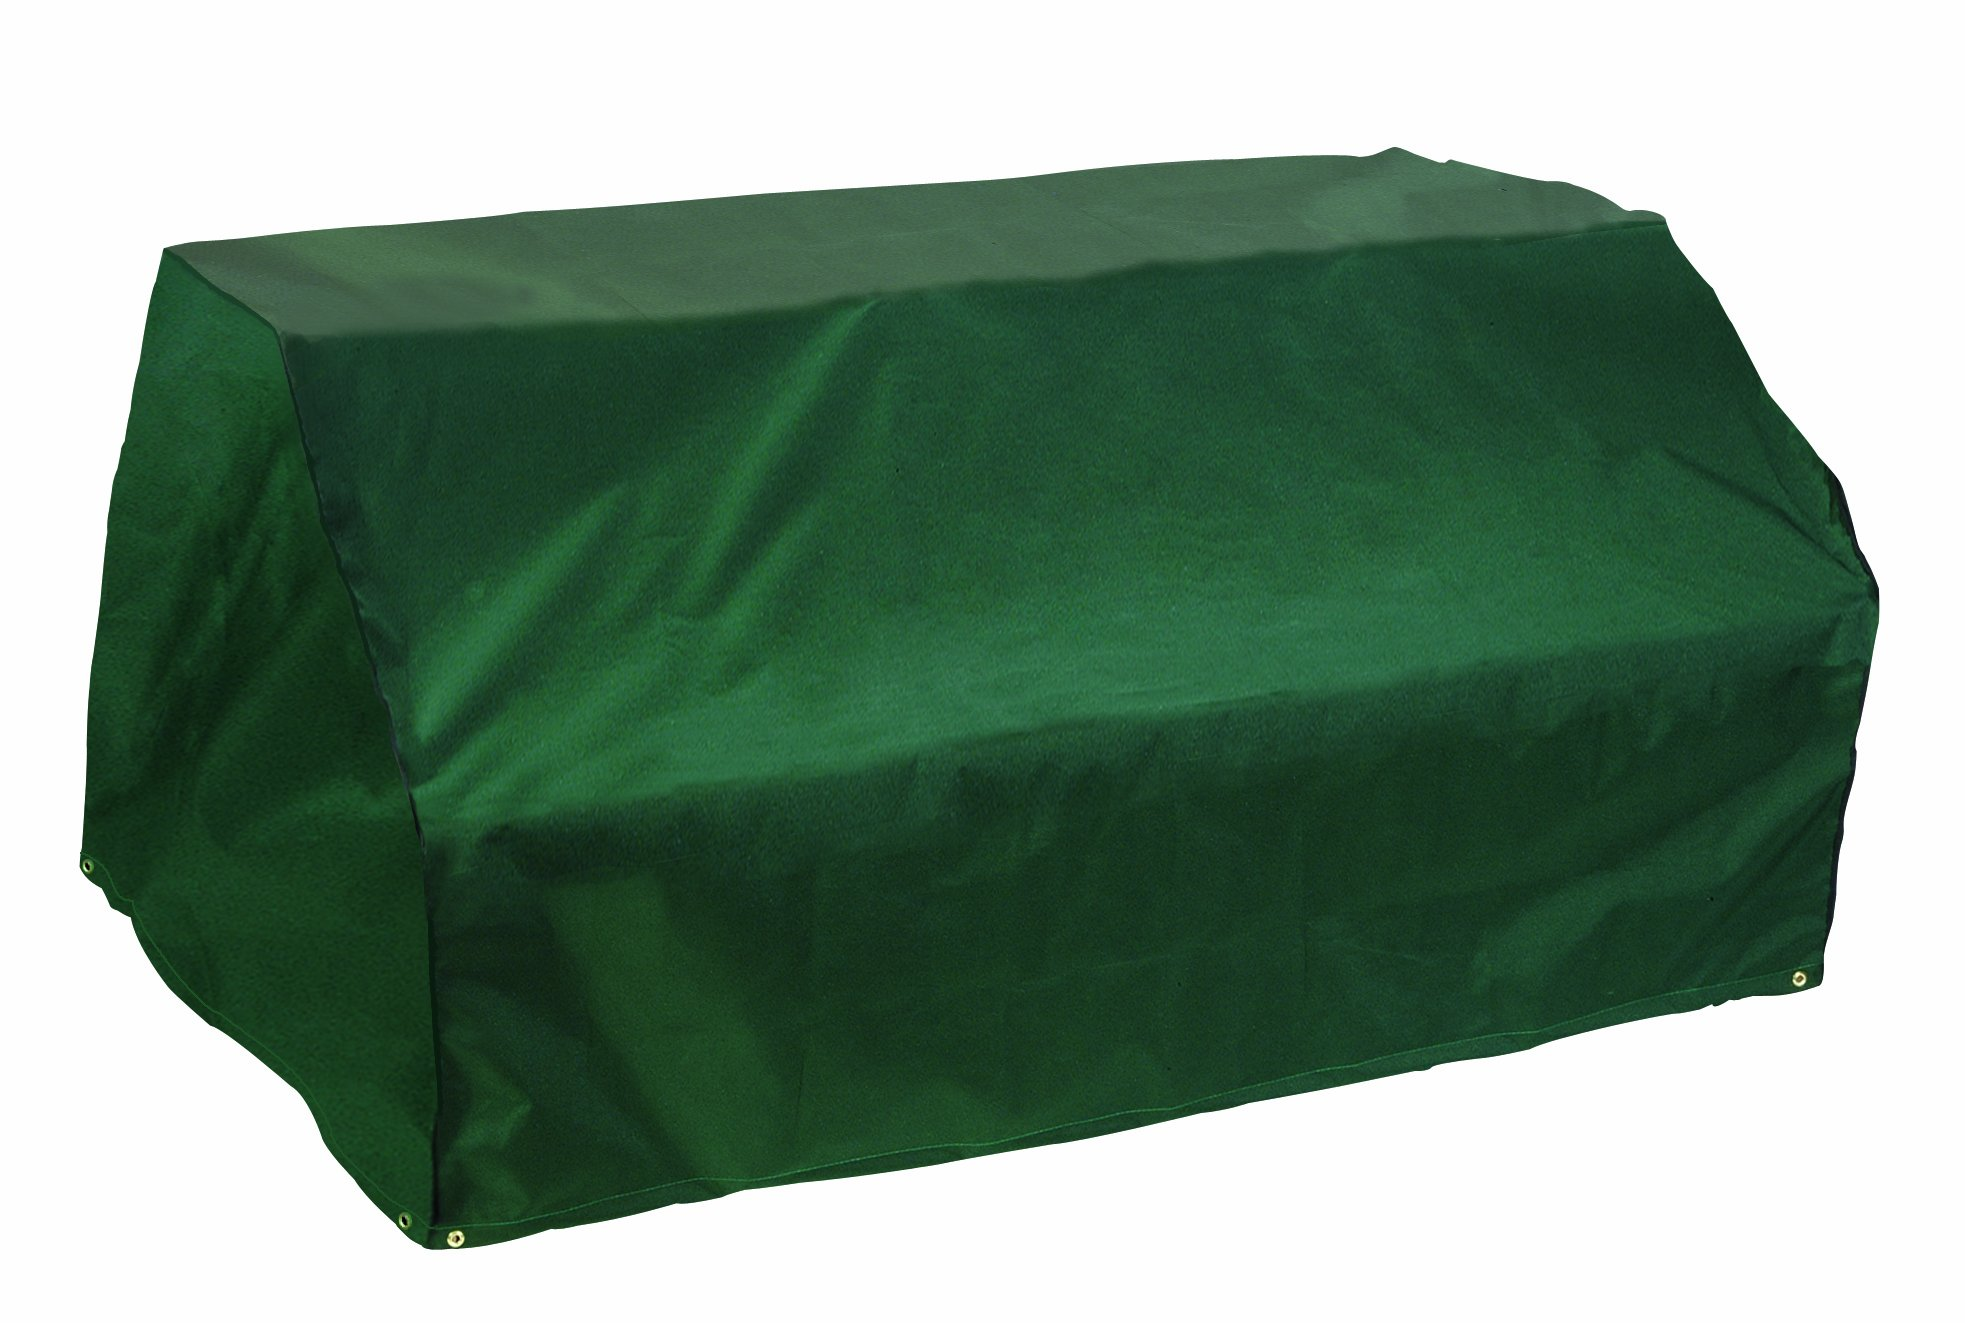 Bosmere C632 Weatherproof Picnic Table Cover, 86'' L x 65'' W x 36'' H, Green